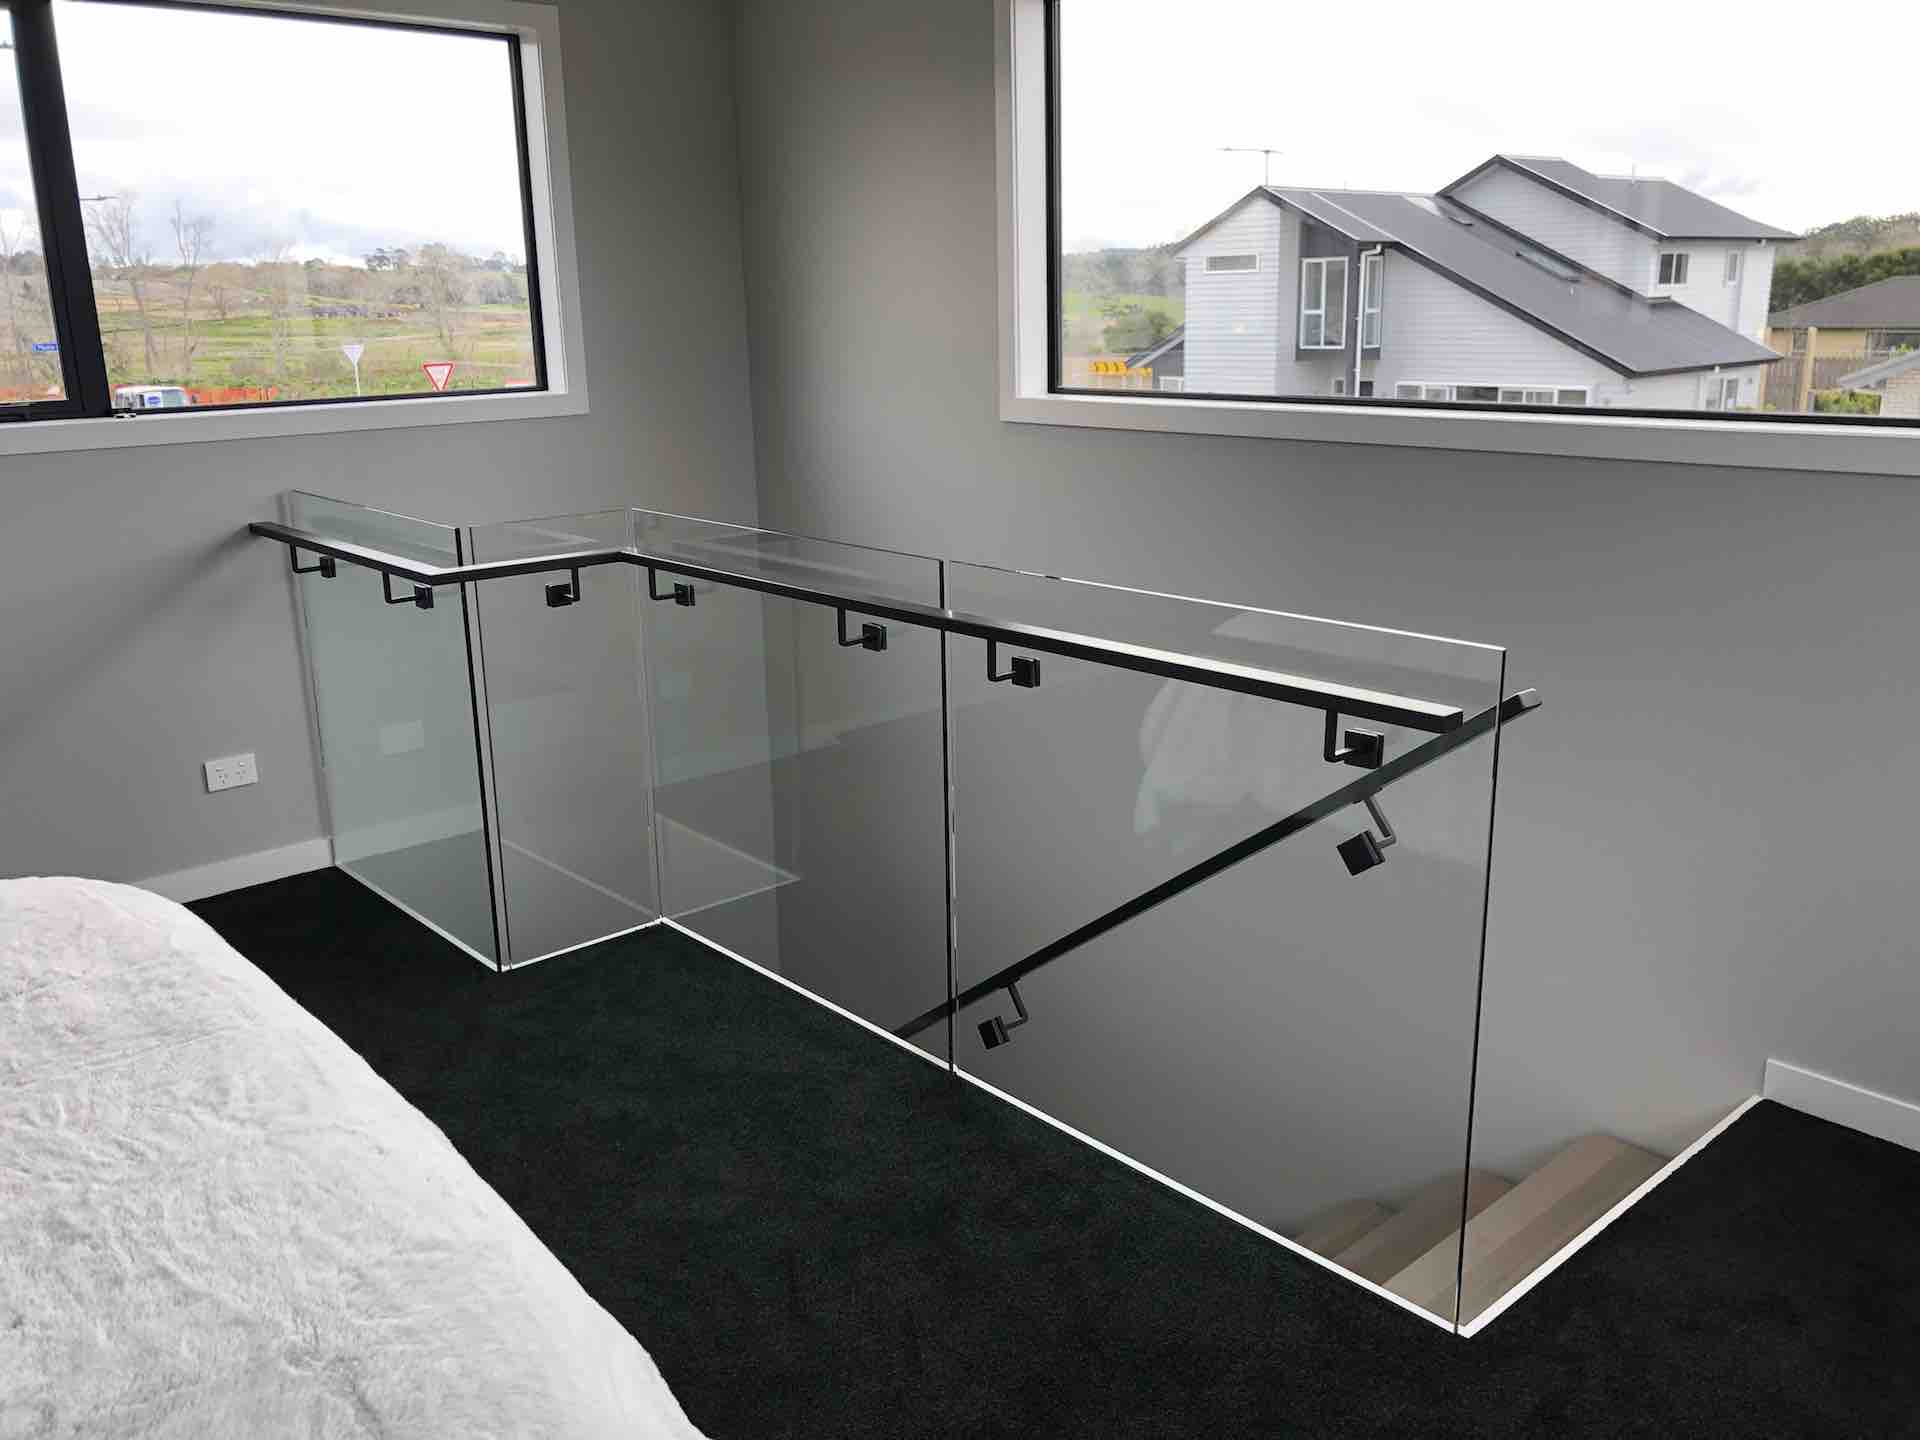 Glass balustrade allows light to come through and appear more spacious